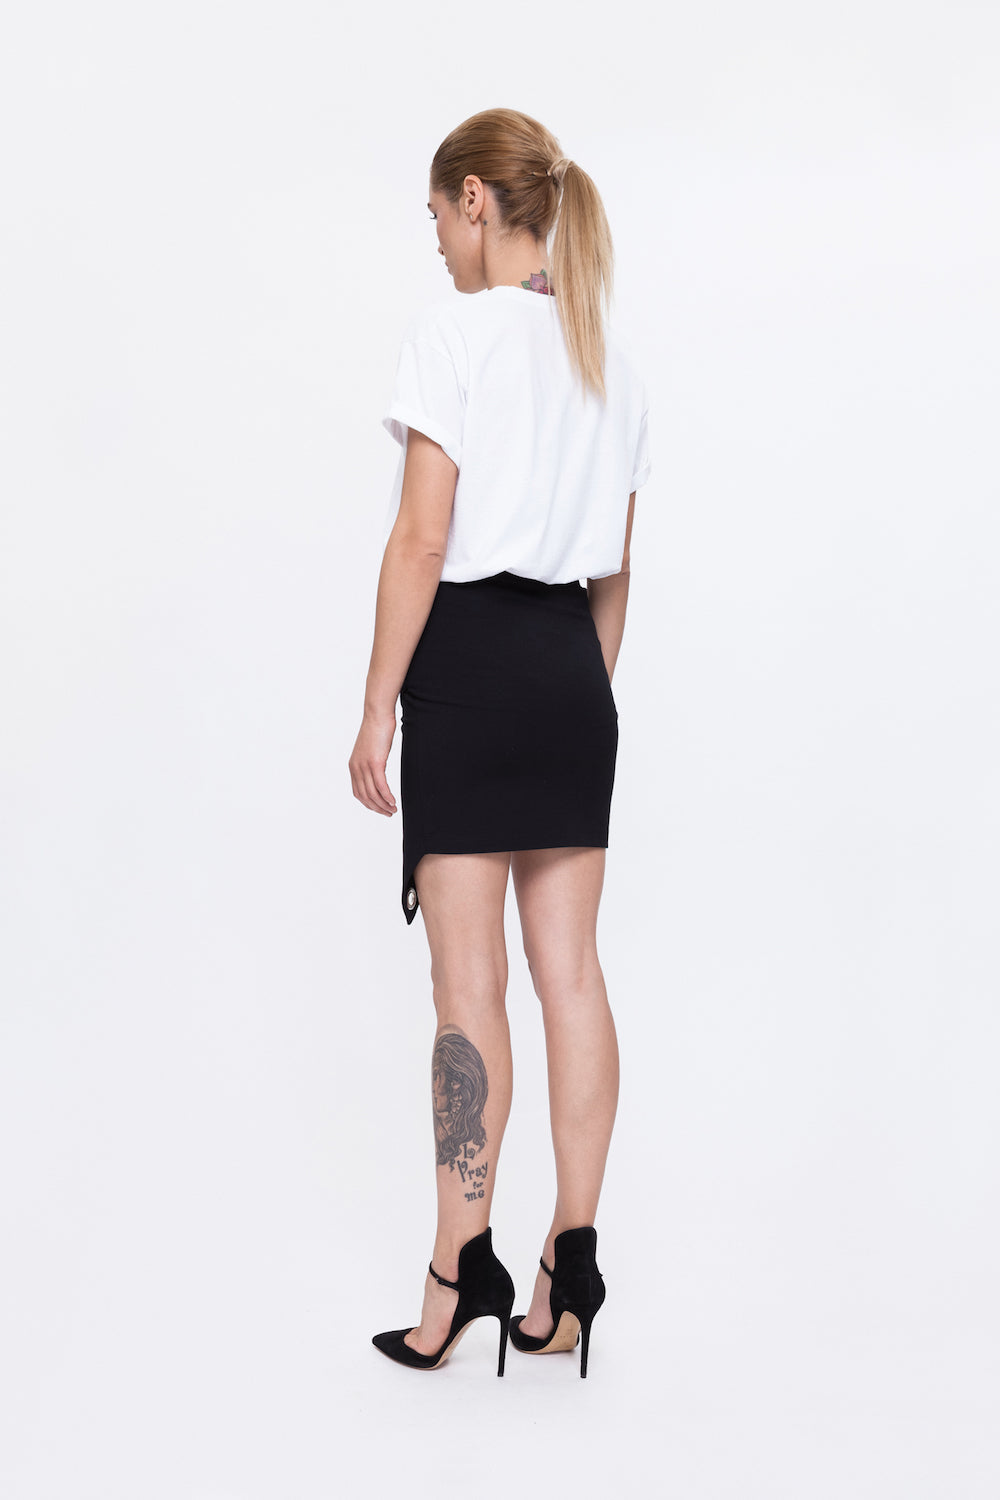 GALLA white t-shirt